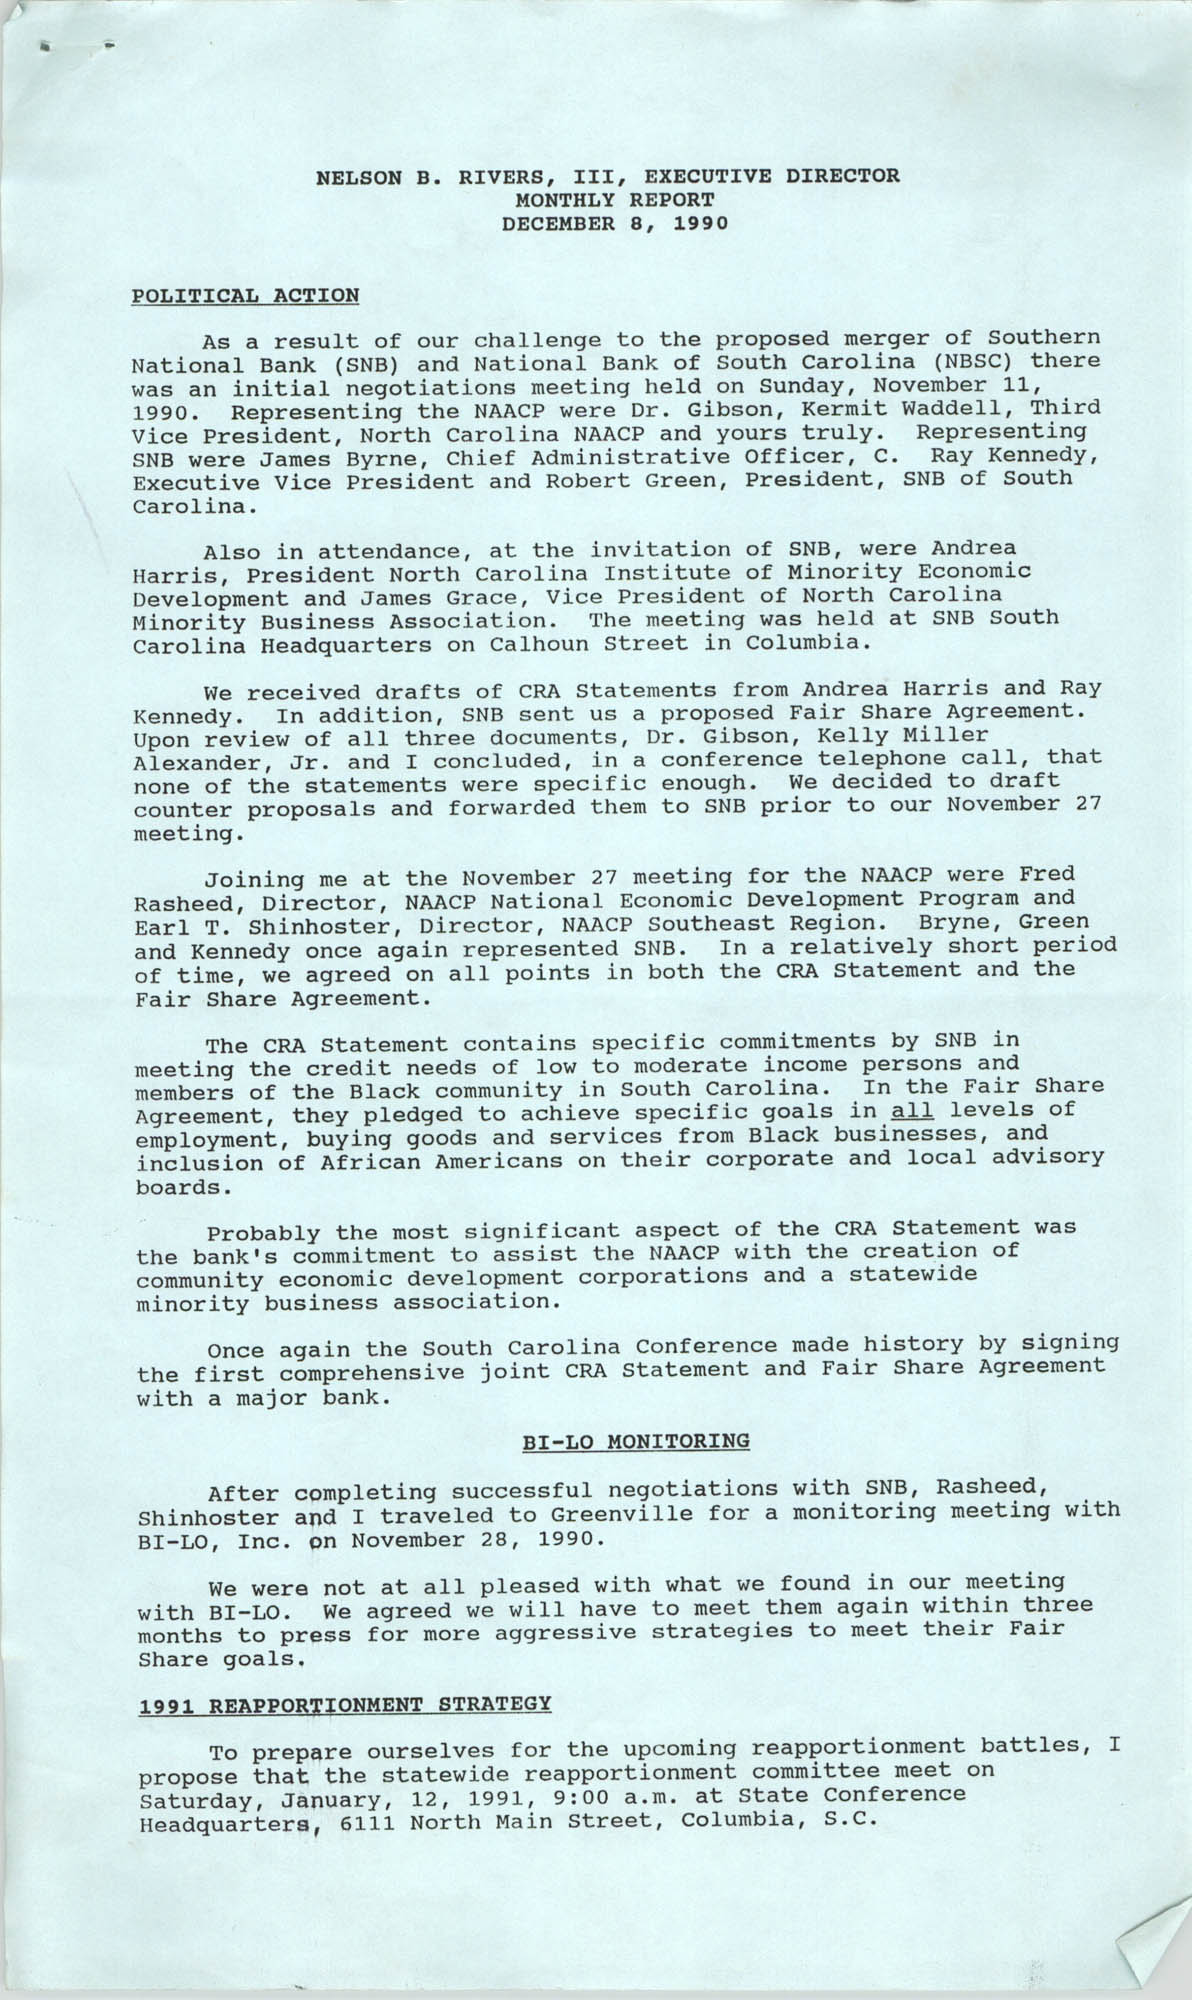 South Carolina Conference of Branches of the NAACP Monthly Report, December 8, 1990